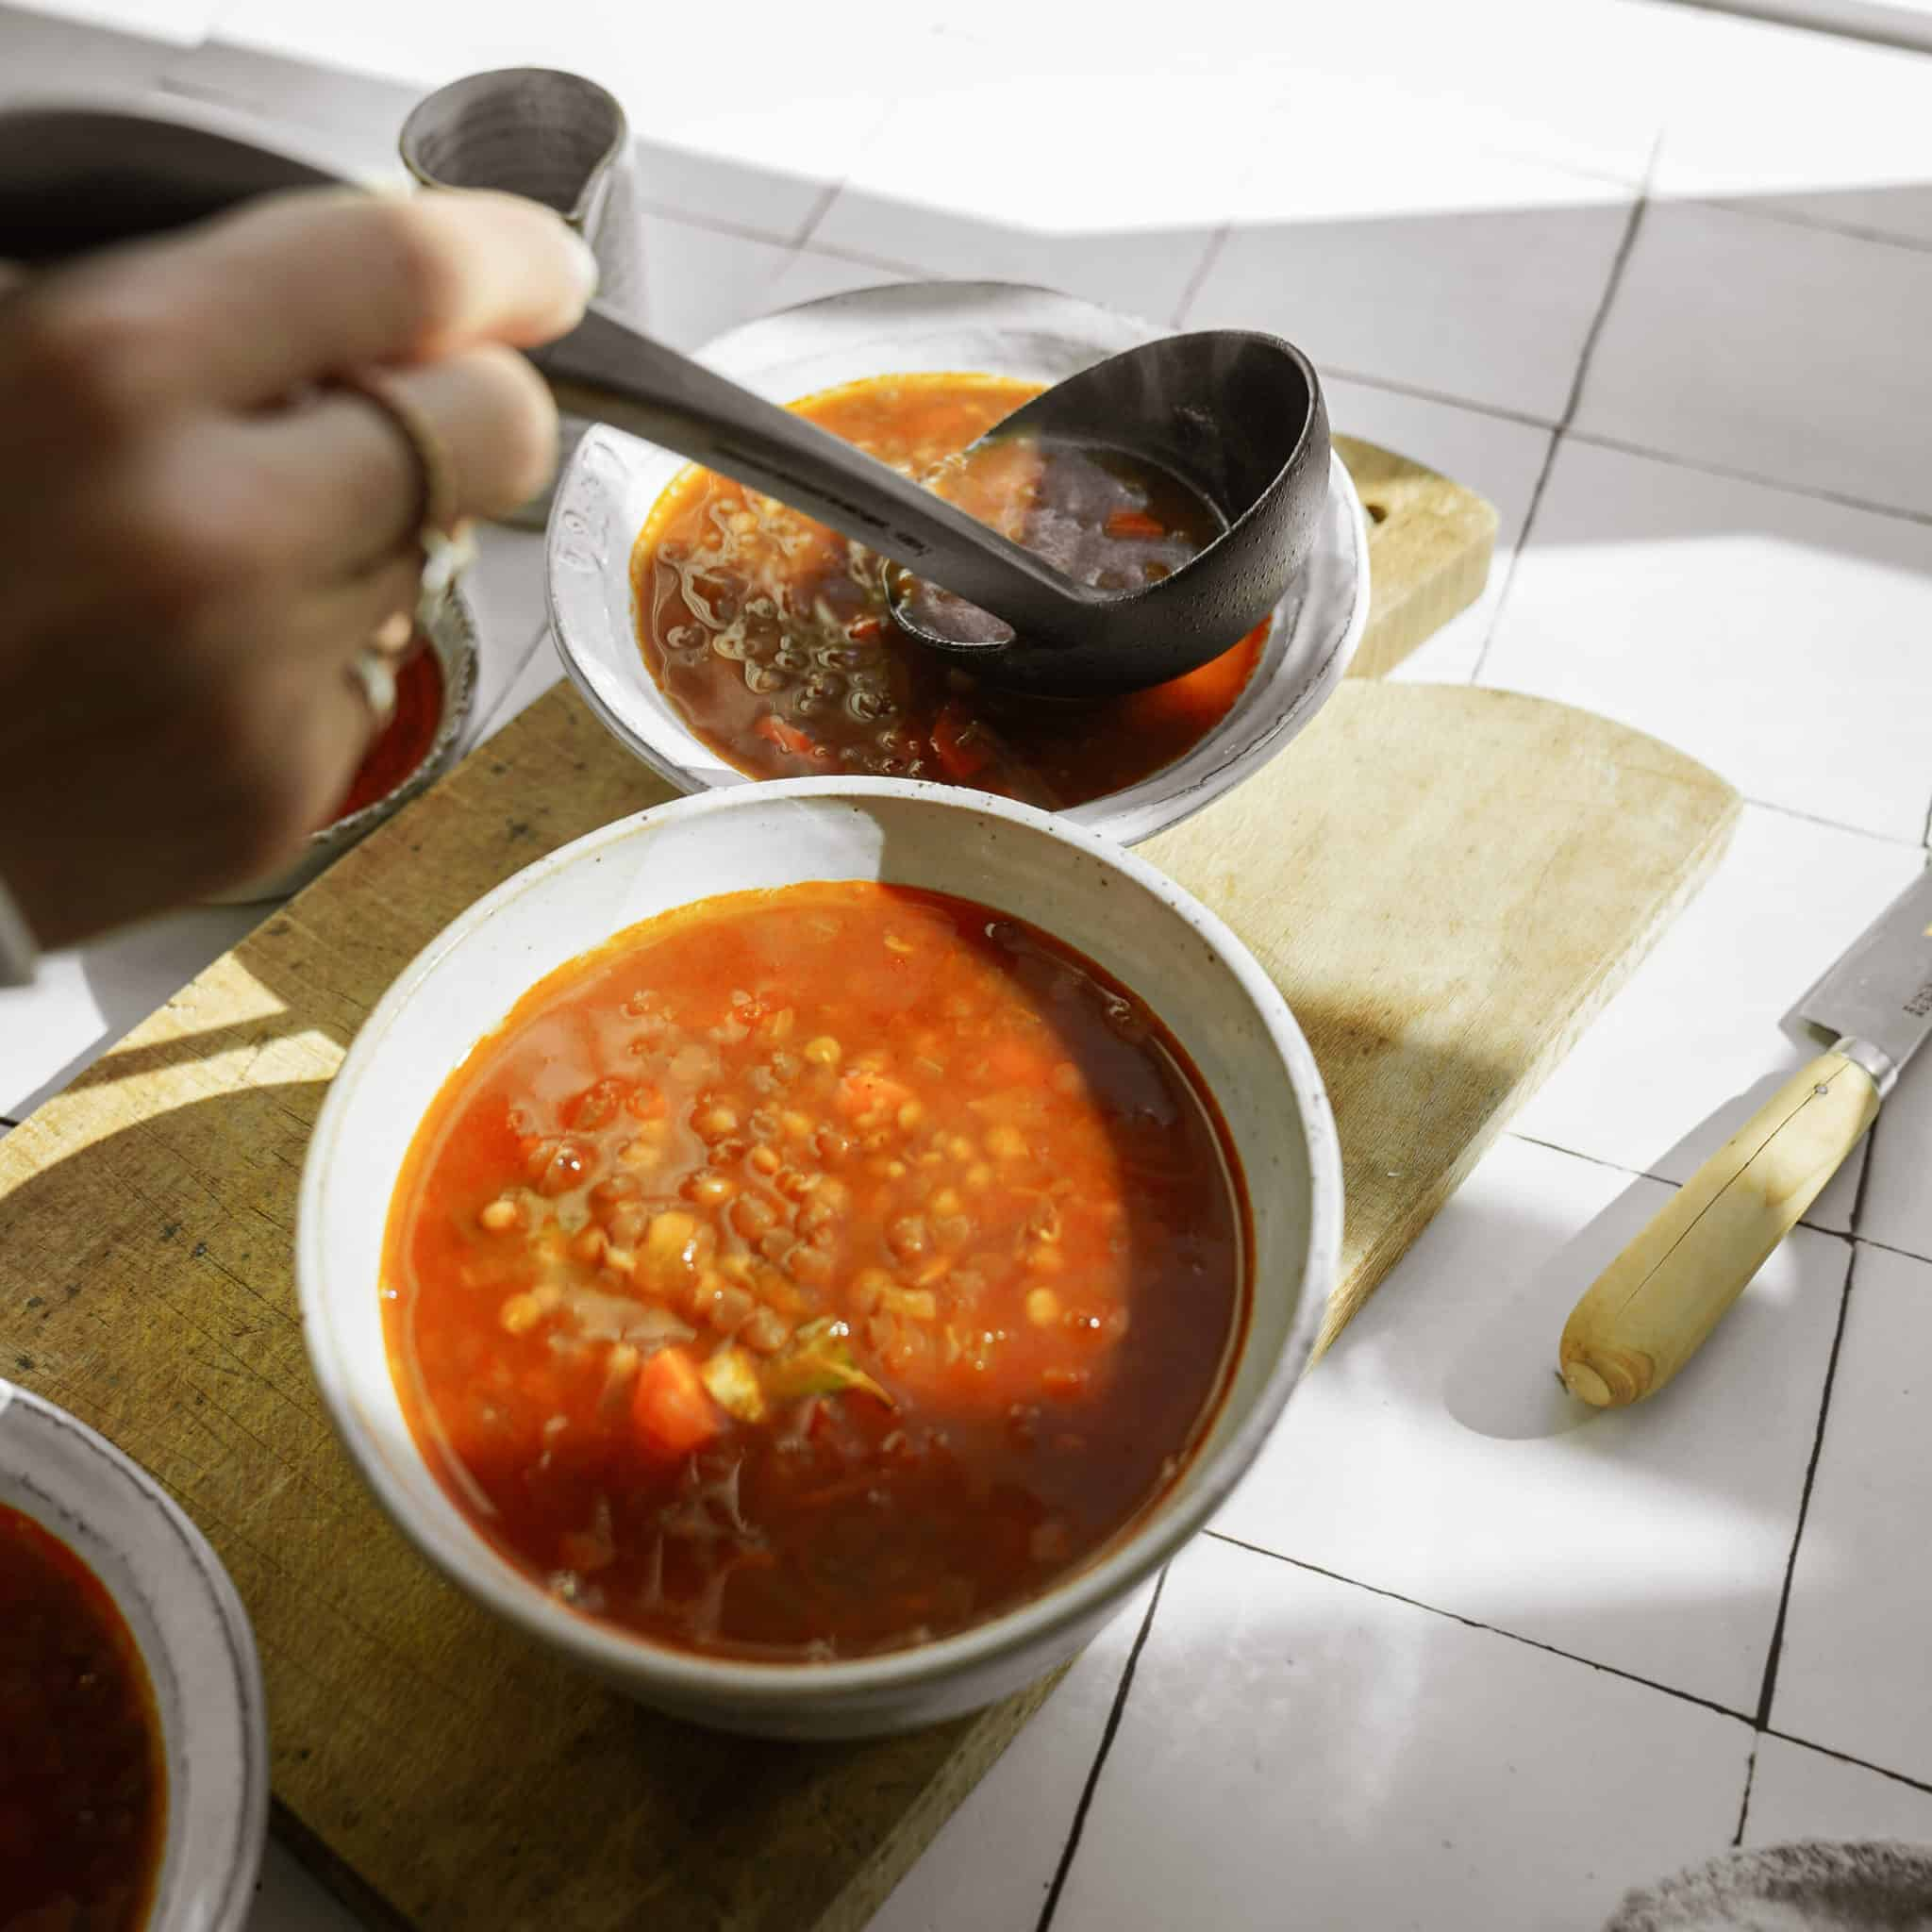 Greek lentil soup being scooped with a spoon